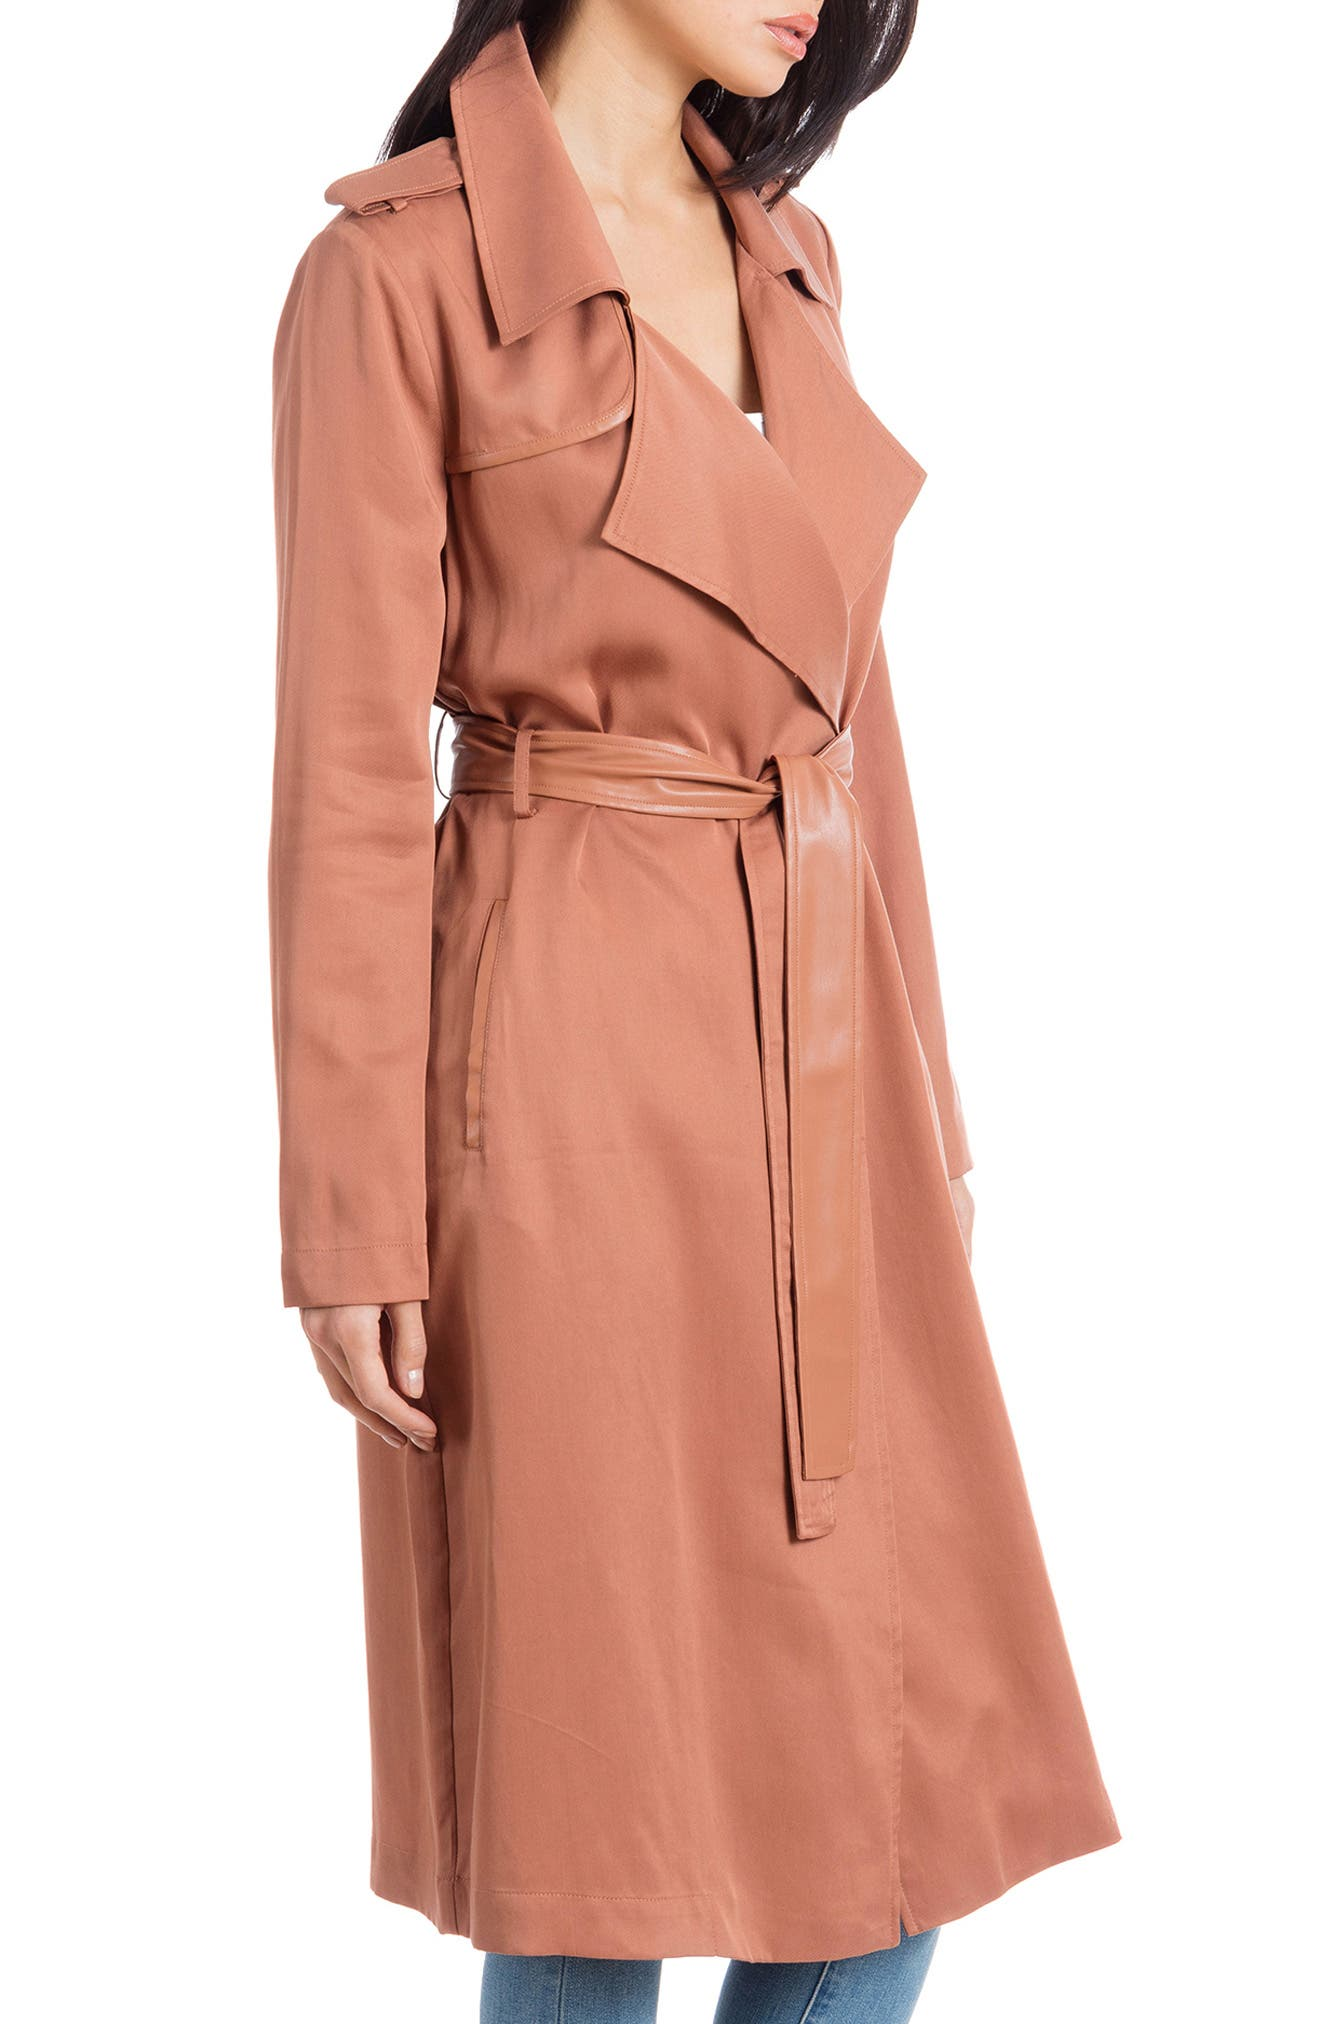 BADGLEY MISCHKA COLLECTION, Badgley Mischka Faux Leather Trim Long Trench Coat, Alternate thumbnail 3, color, CEDAR